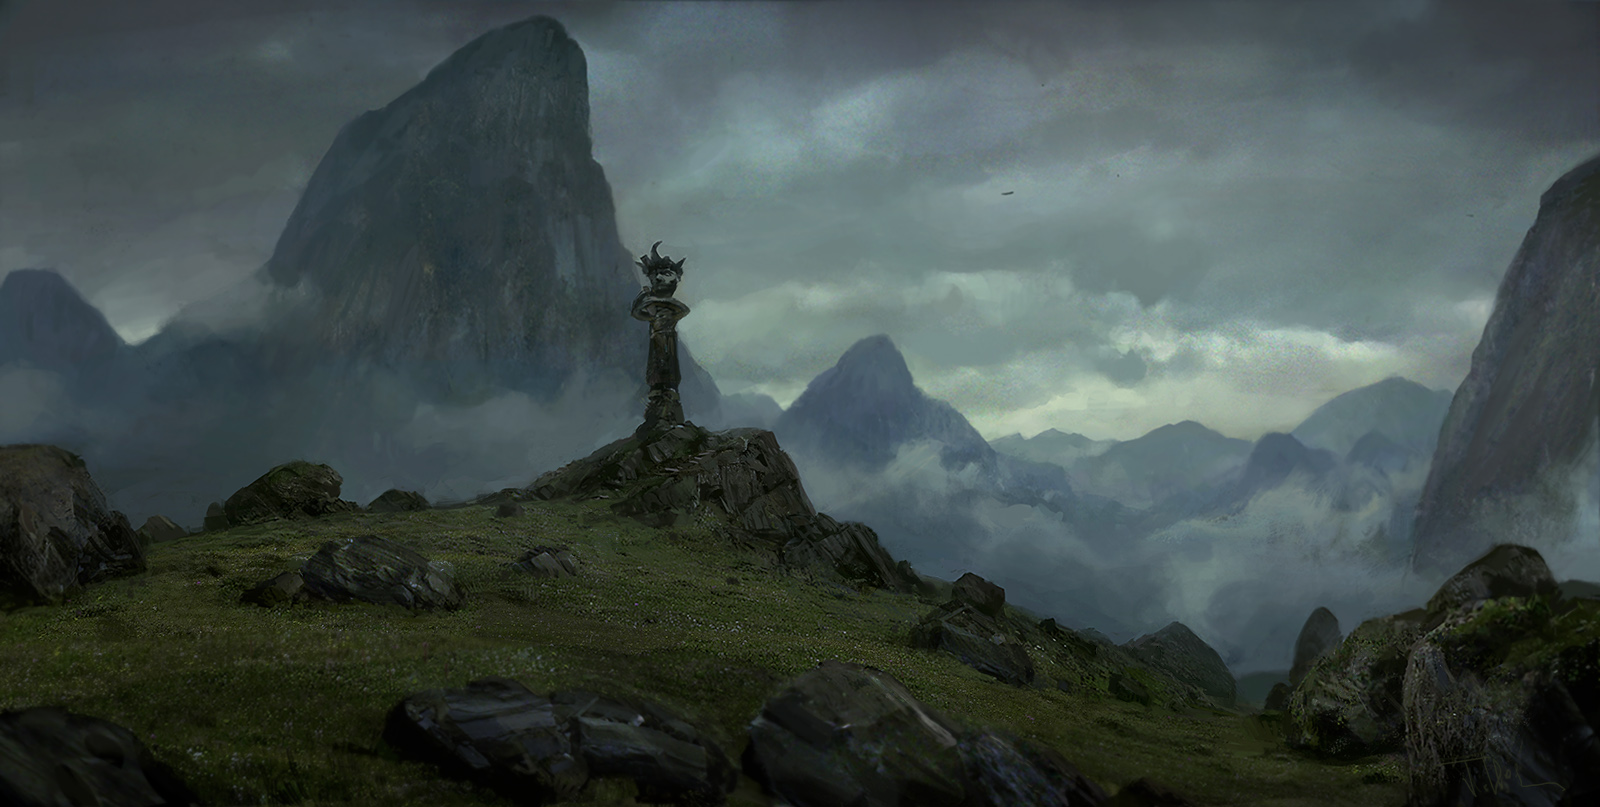 Mountain god by merl1ncz